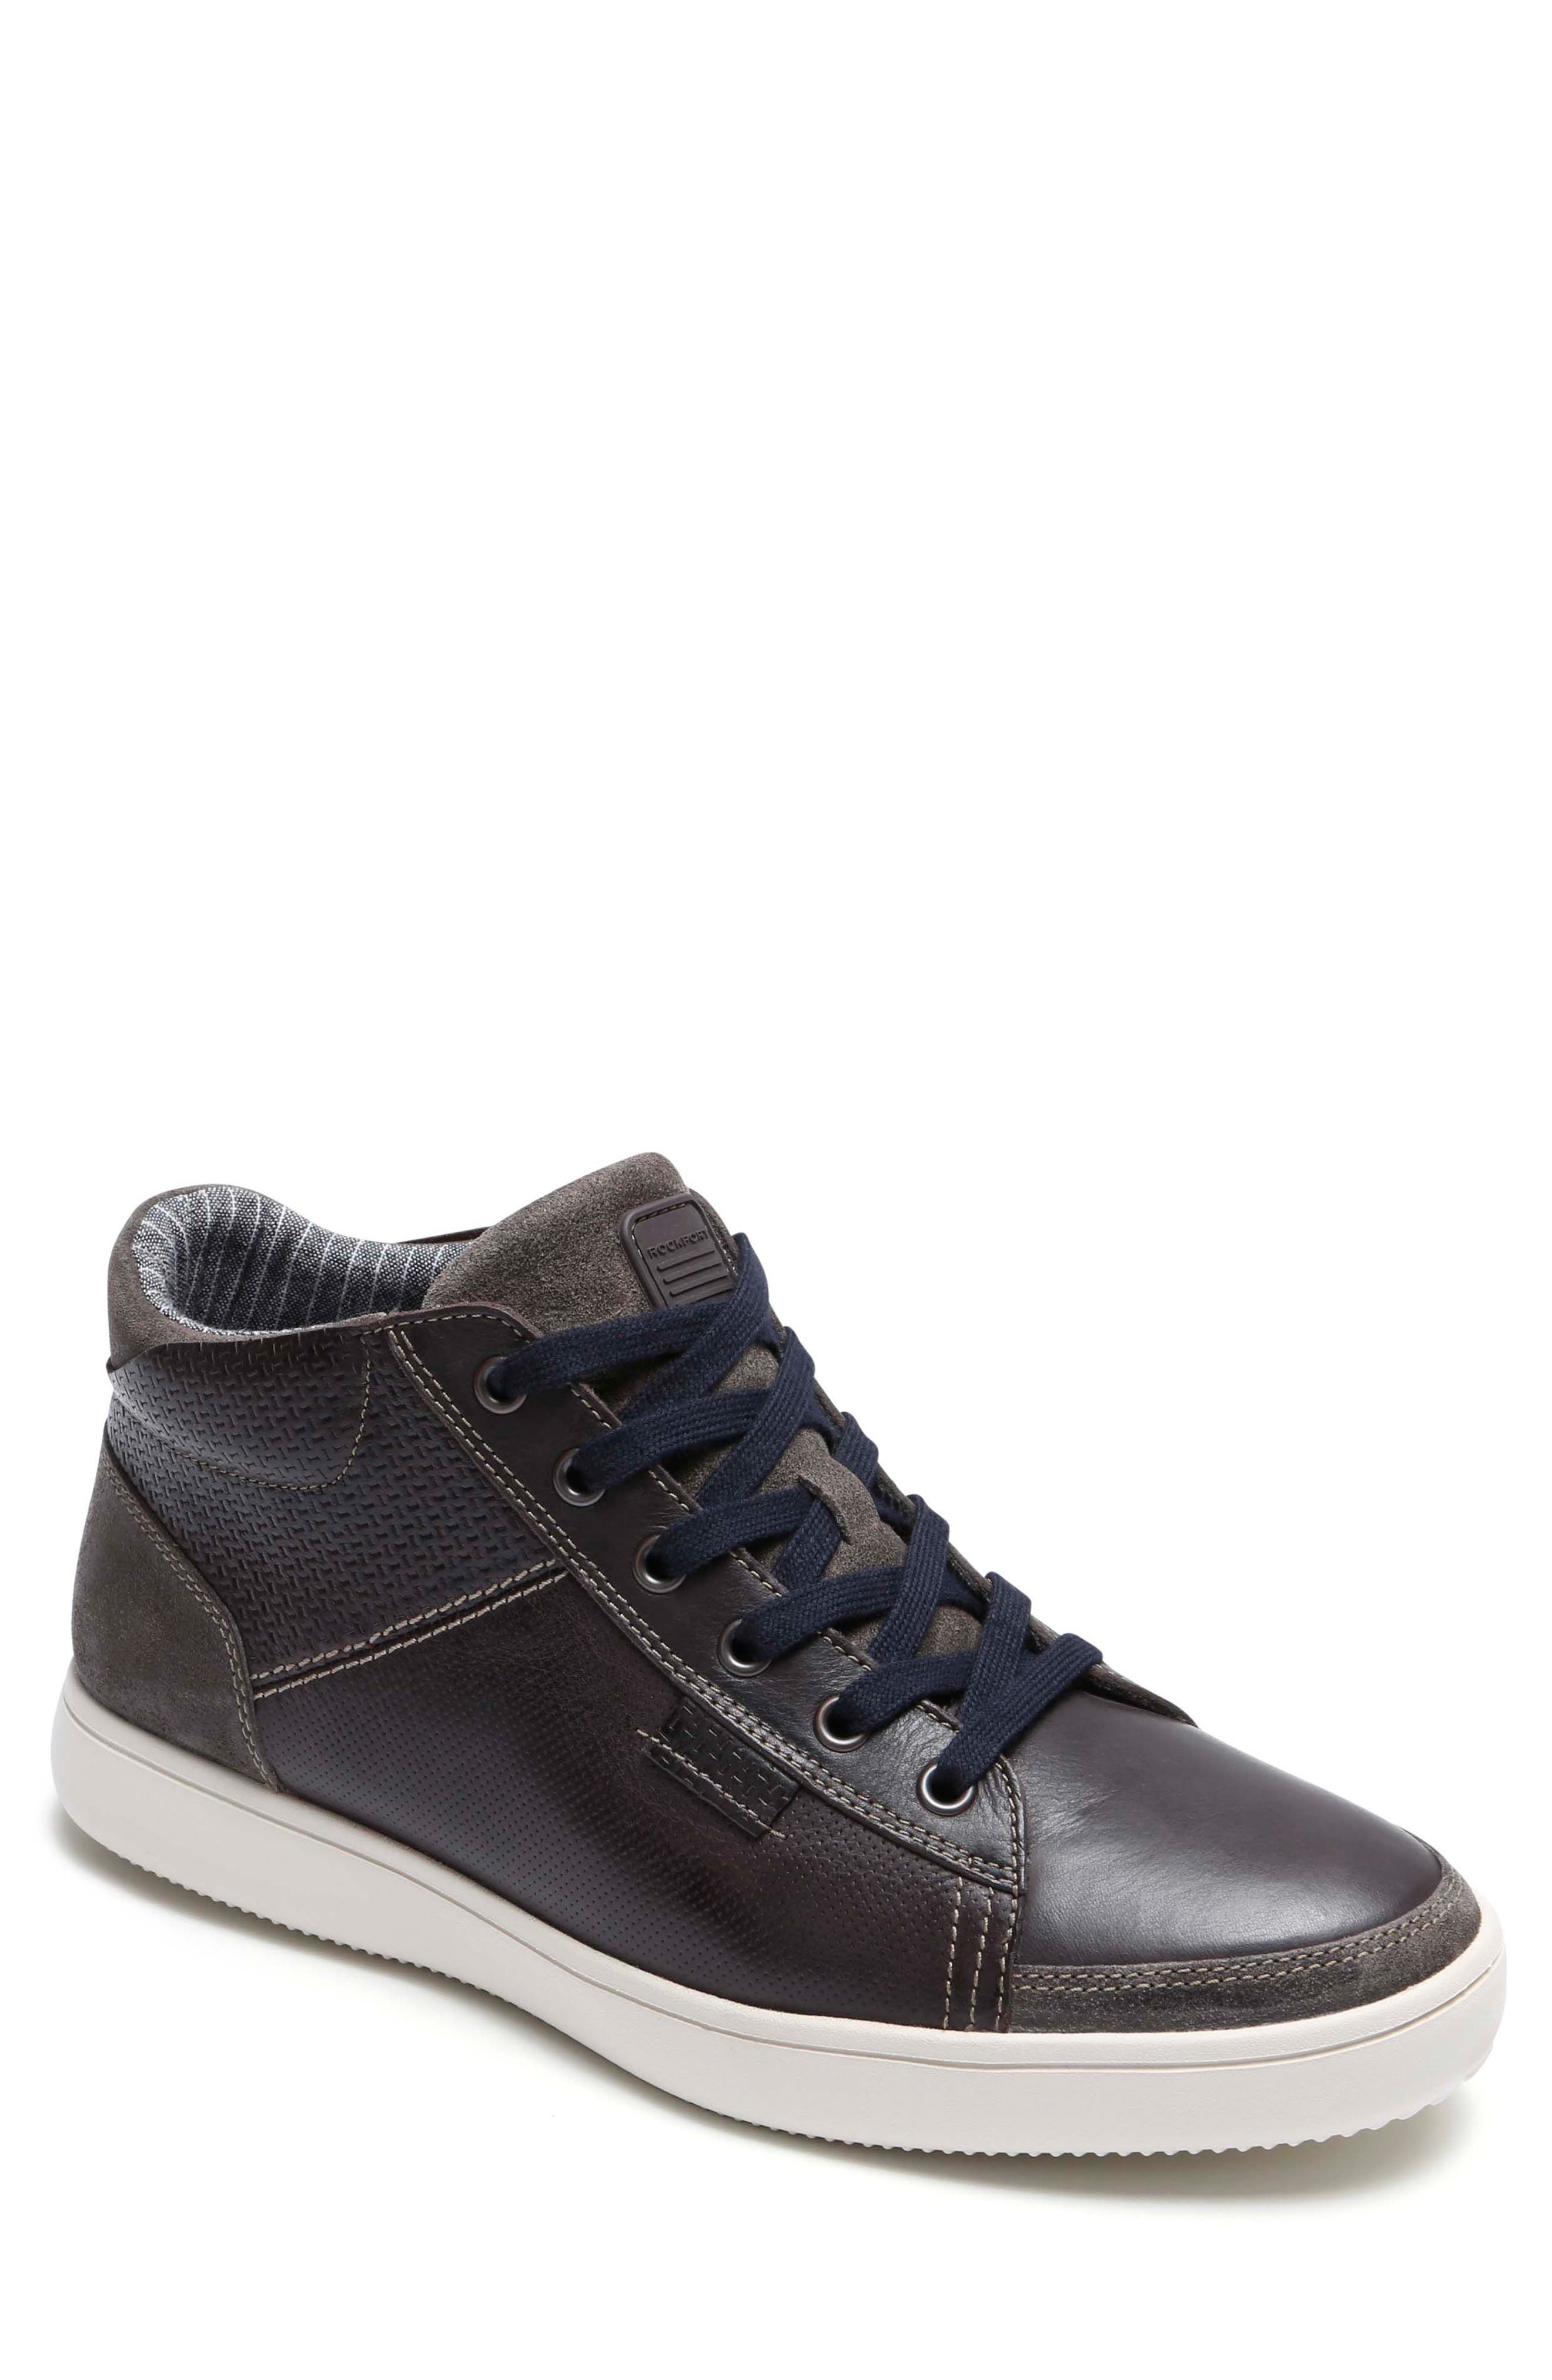 Colle Sneaker,                         Main,                         color, COFFEE LEATHER